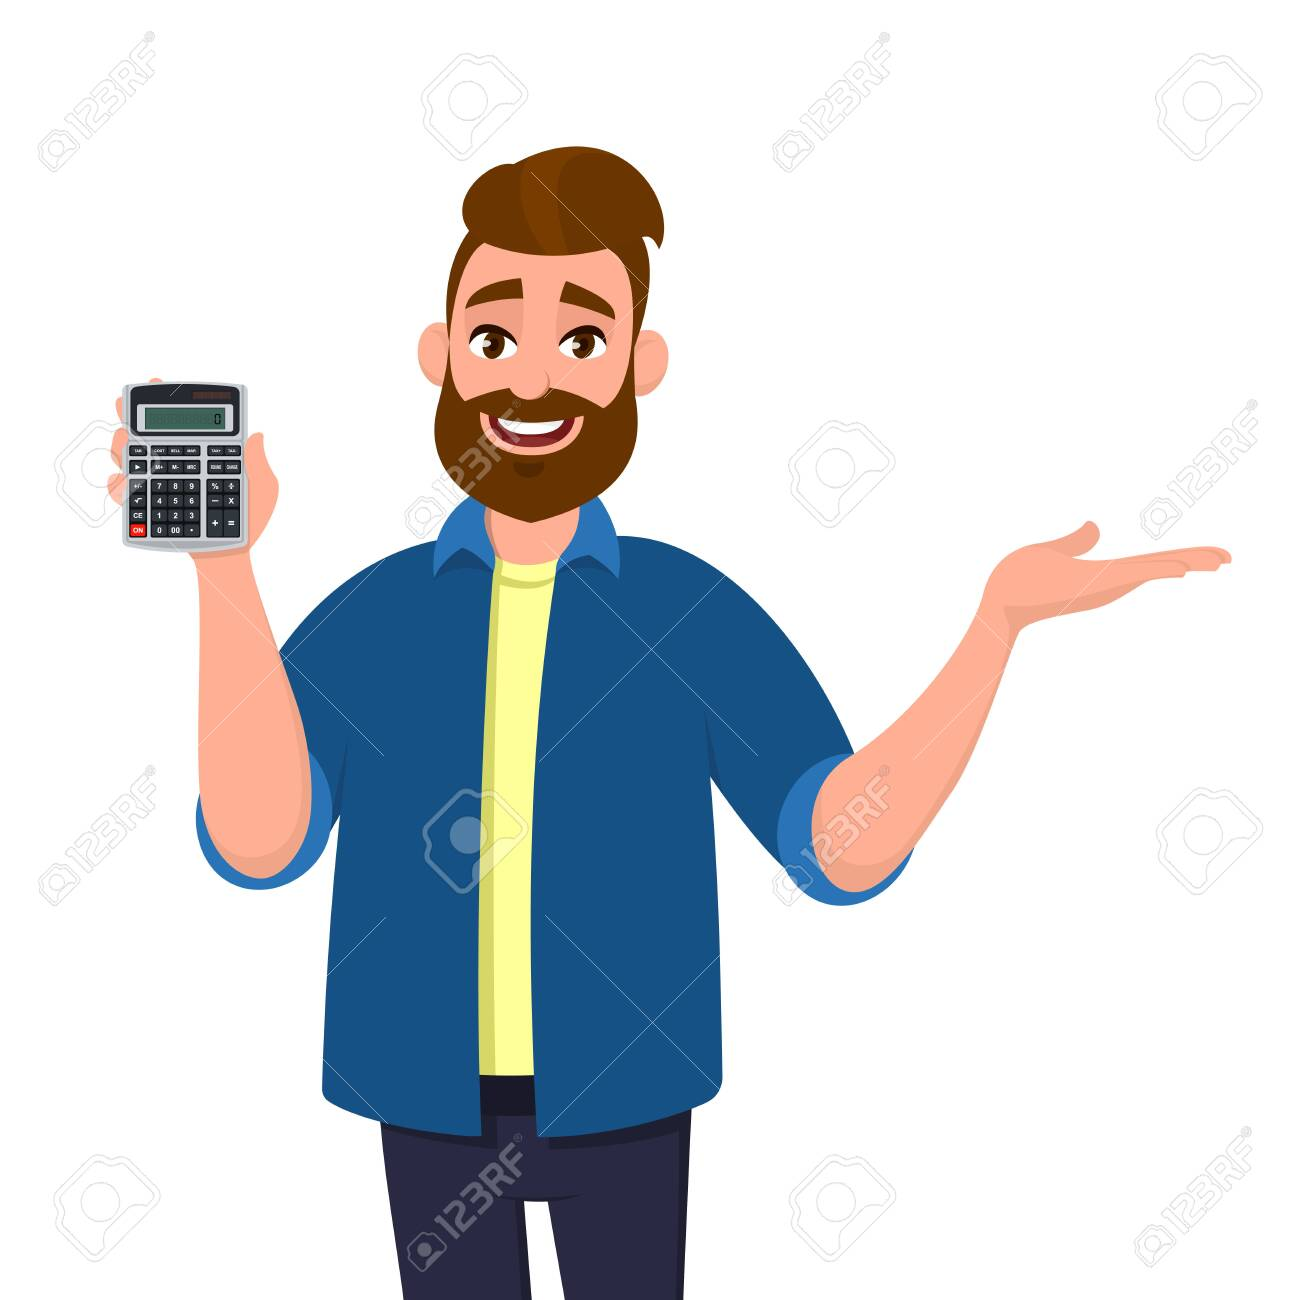 Happy bearded man showing or holding digital calculator device in hand and pointing, presenting something to copy space. Modern lifestyle, technology, business and finance, banking concept in cartoon. - 134599378